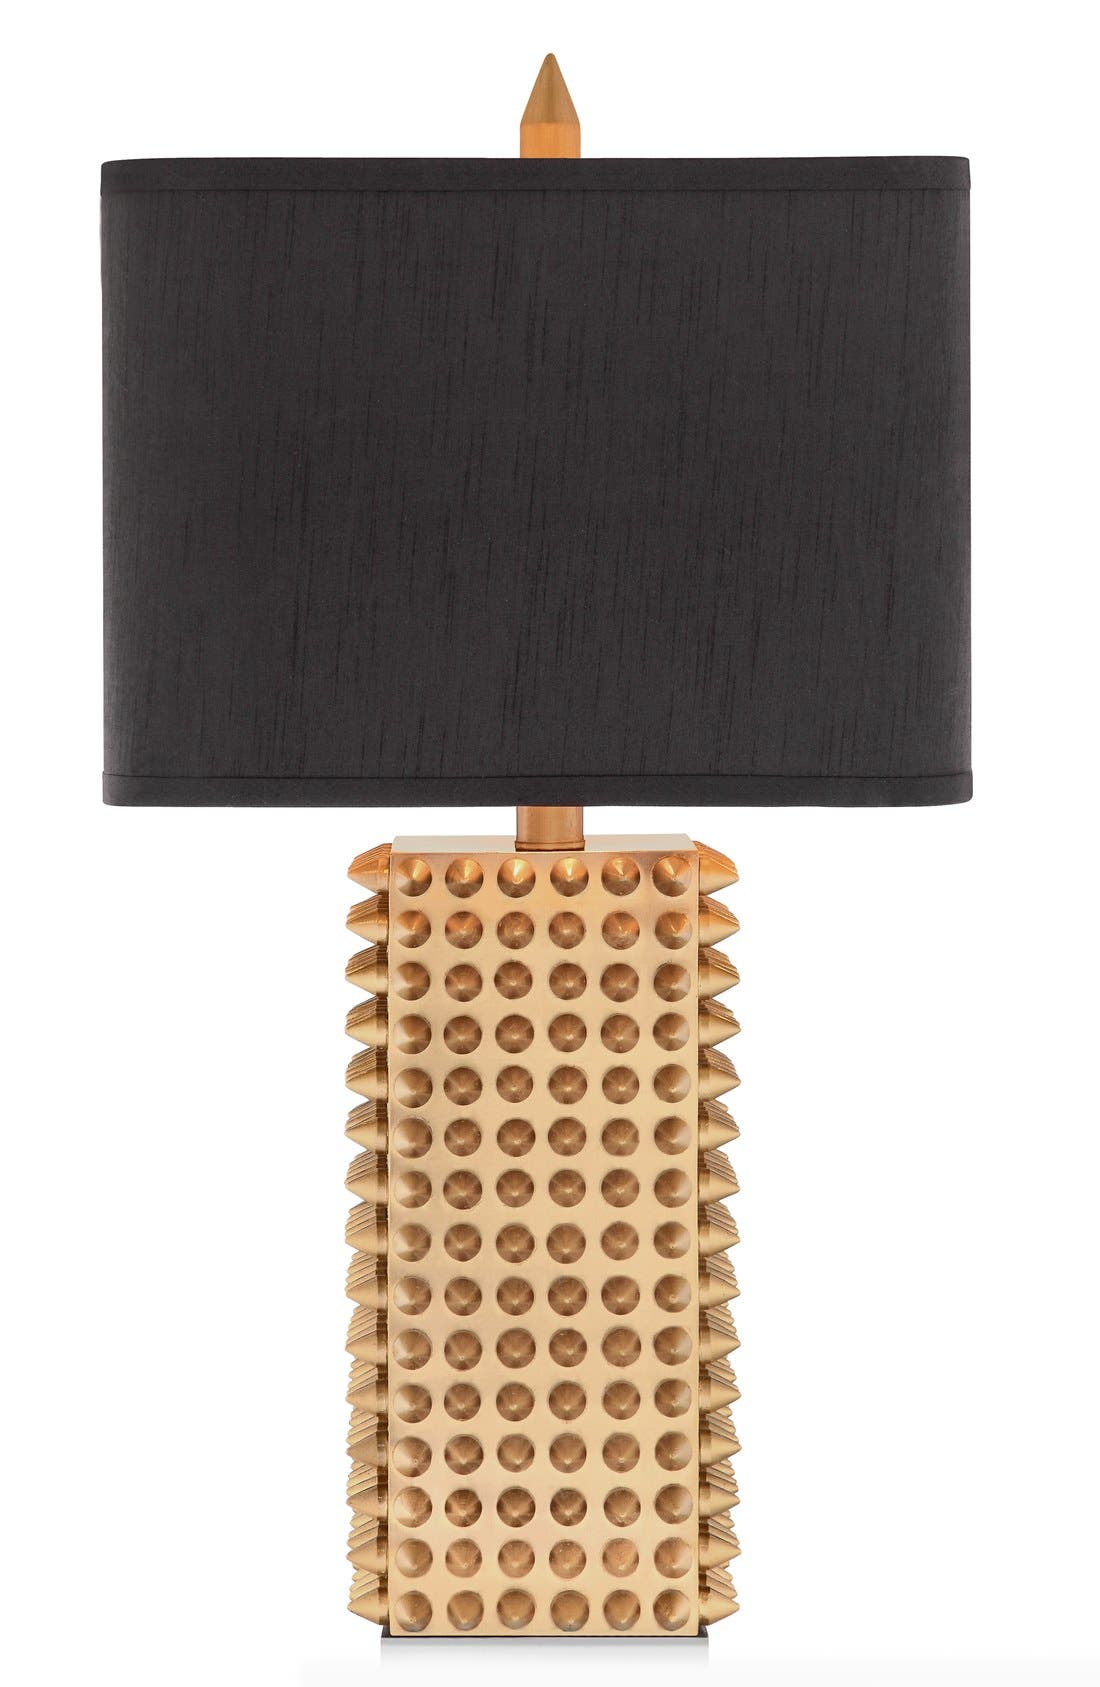 Goldtone Spiked Square Table Lamp,                         Main,                         color, Gold